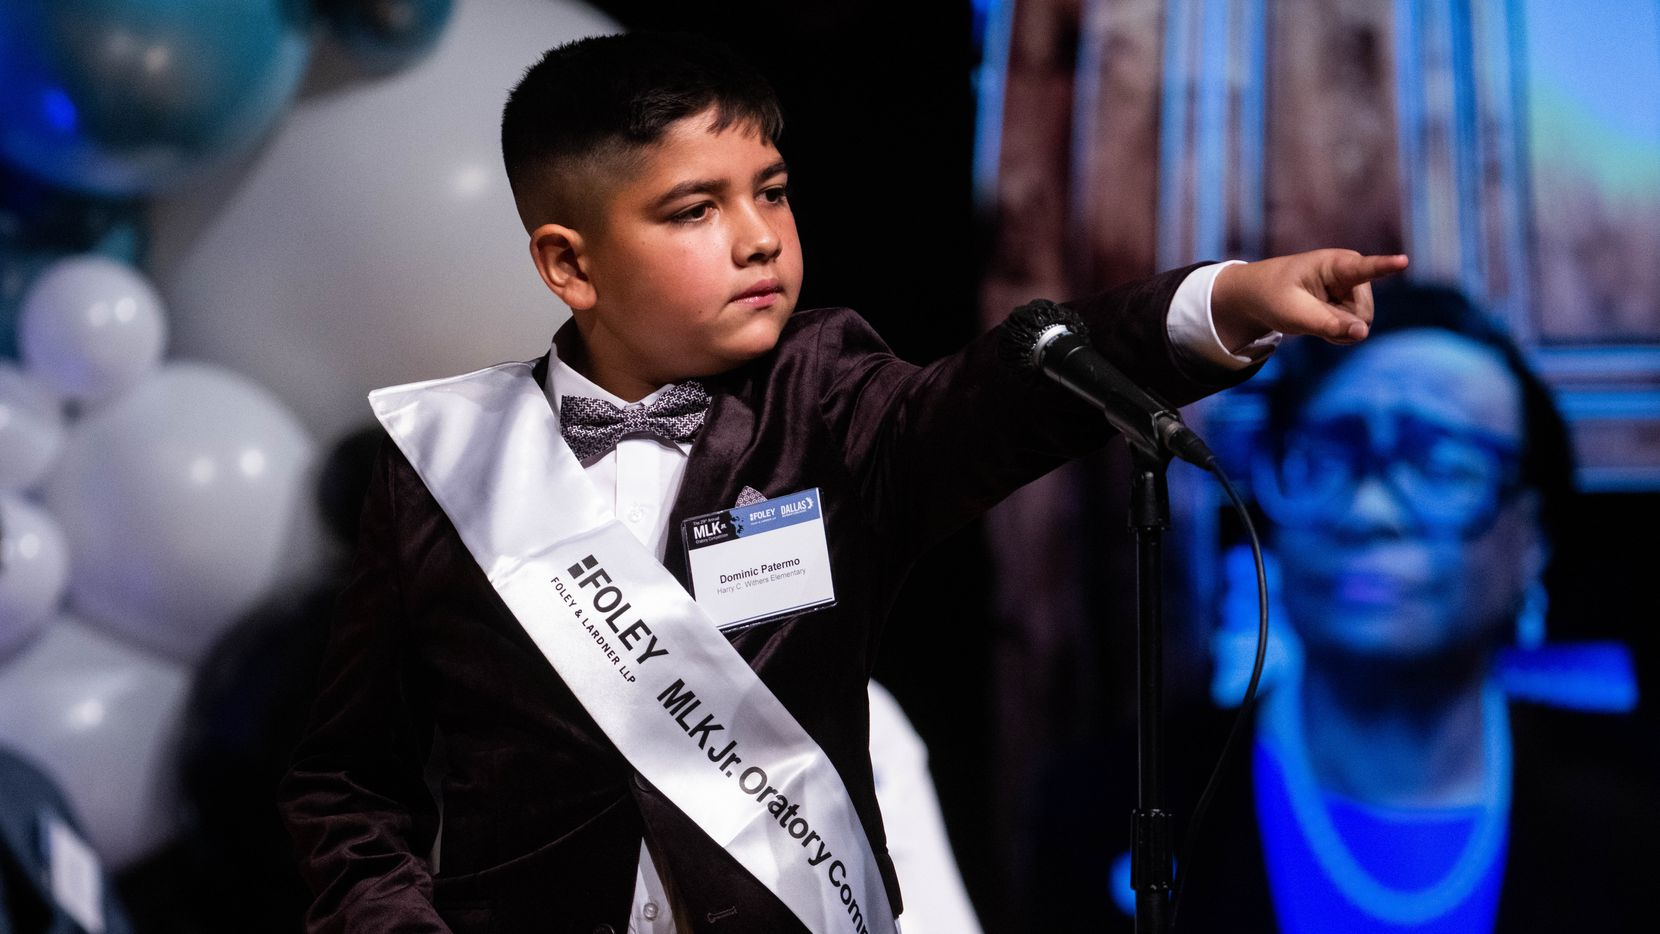 Dominic Patermo, 11, a Harry C. Withers Elementary fifth grader won first place during the 29th annual MLK Jr. Oratory Competition at W.H. Adamson High School on Friday, Jan. 14, 2020.